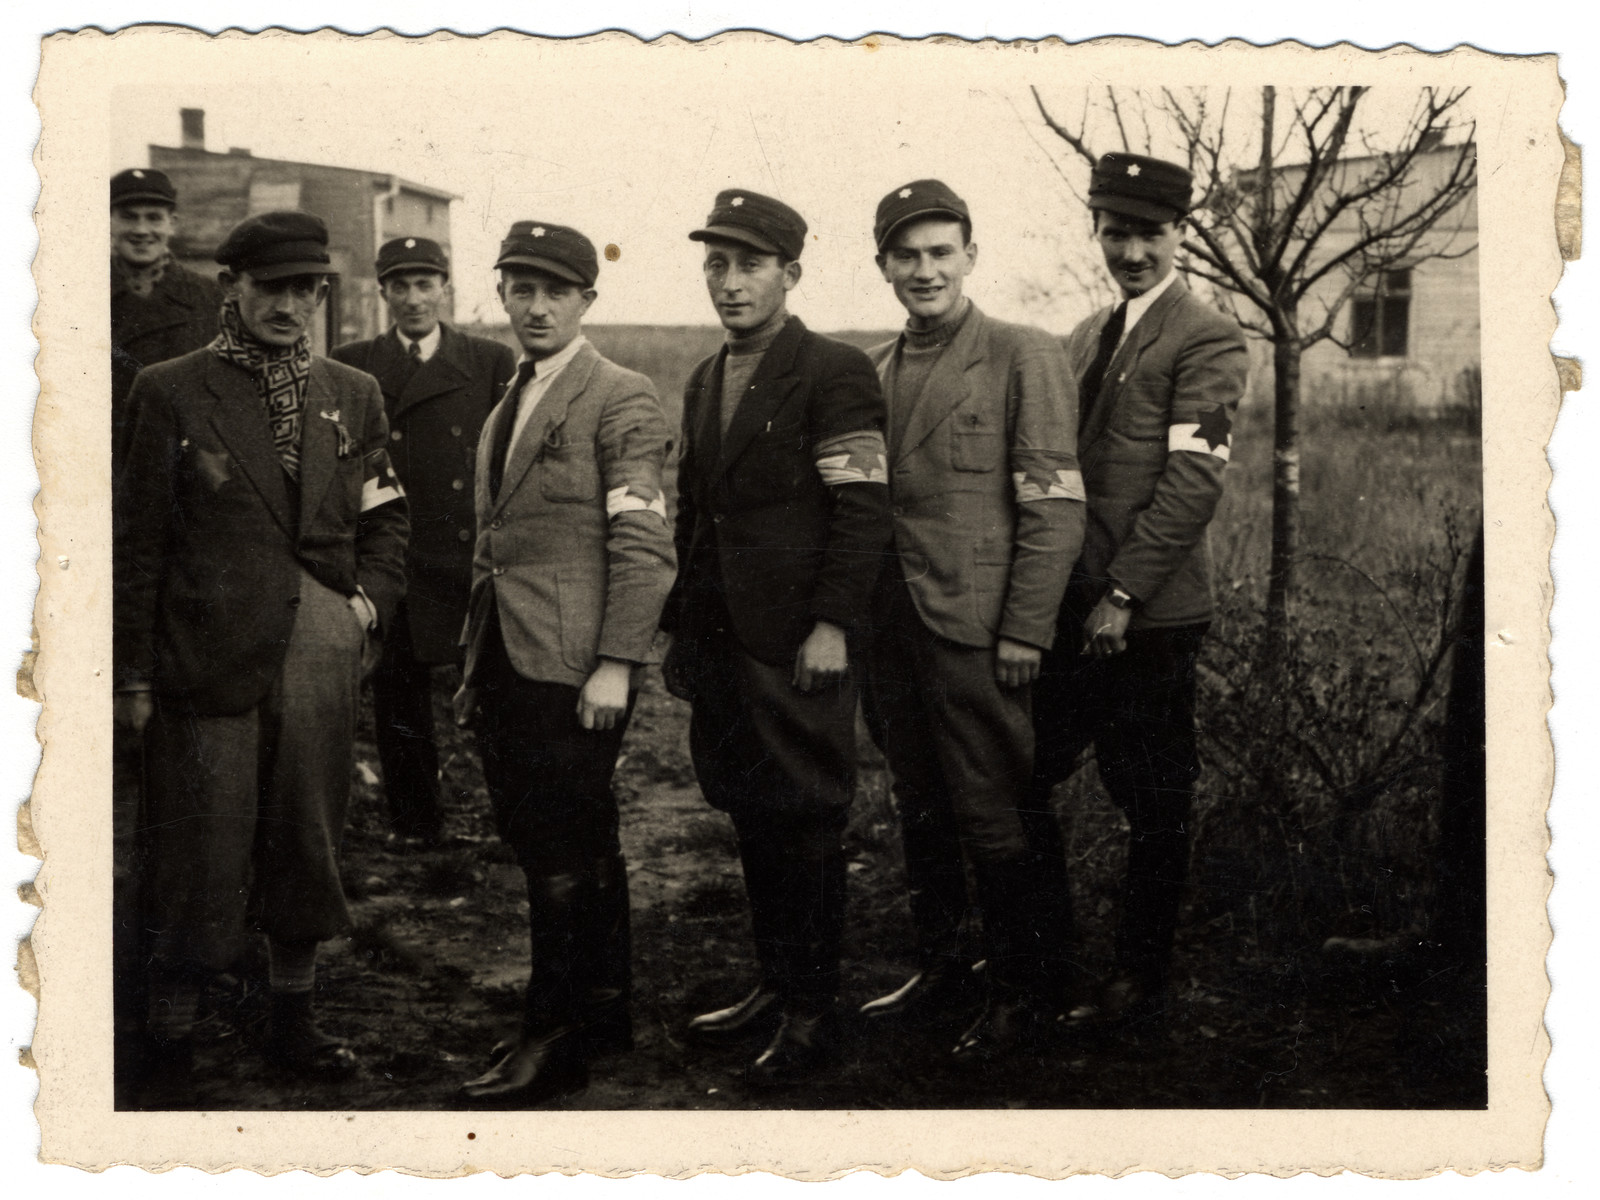 Jewish policemen from the Lodz ghetto pose for a group portrait.